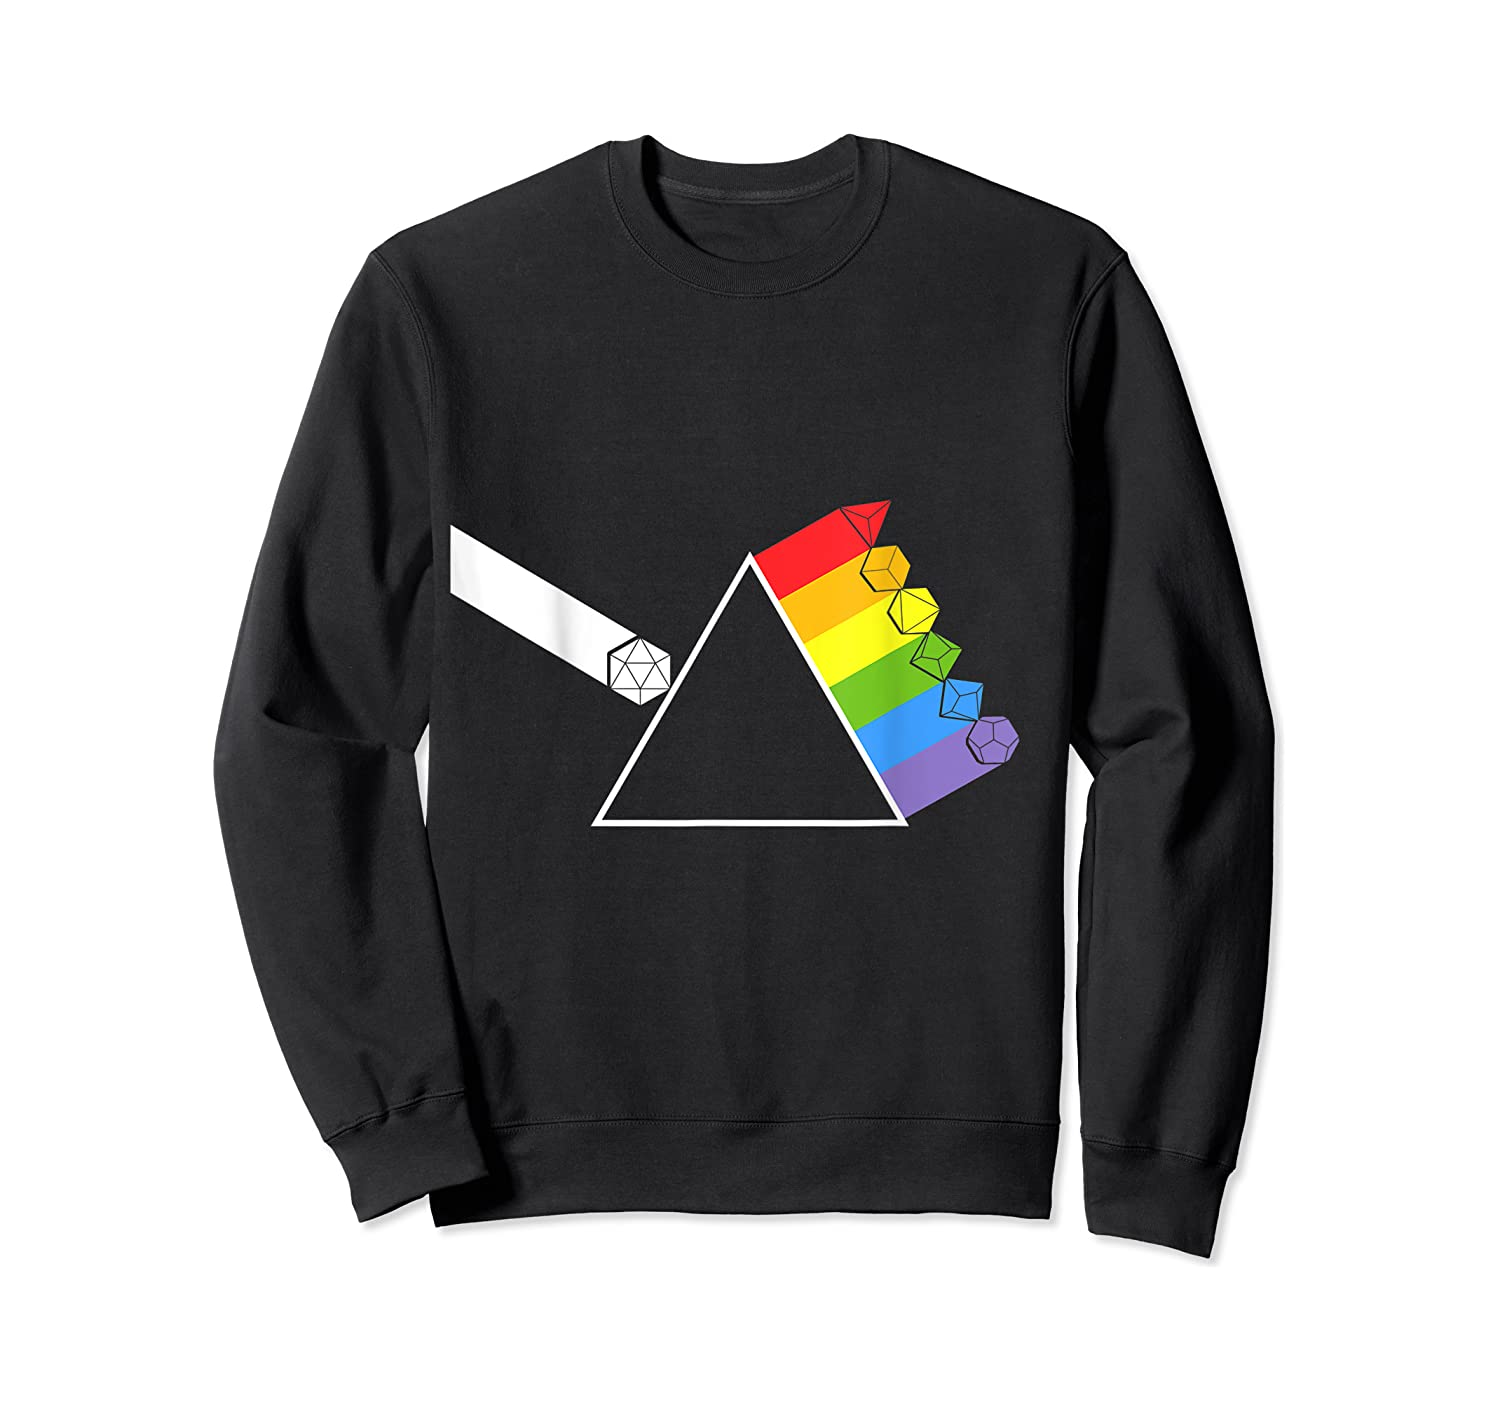 Diceside Of The Moon D20 Dice Set Tabletop Game Shirts Crewneck Sweater